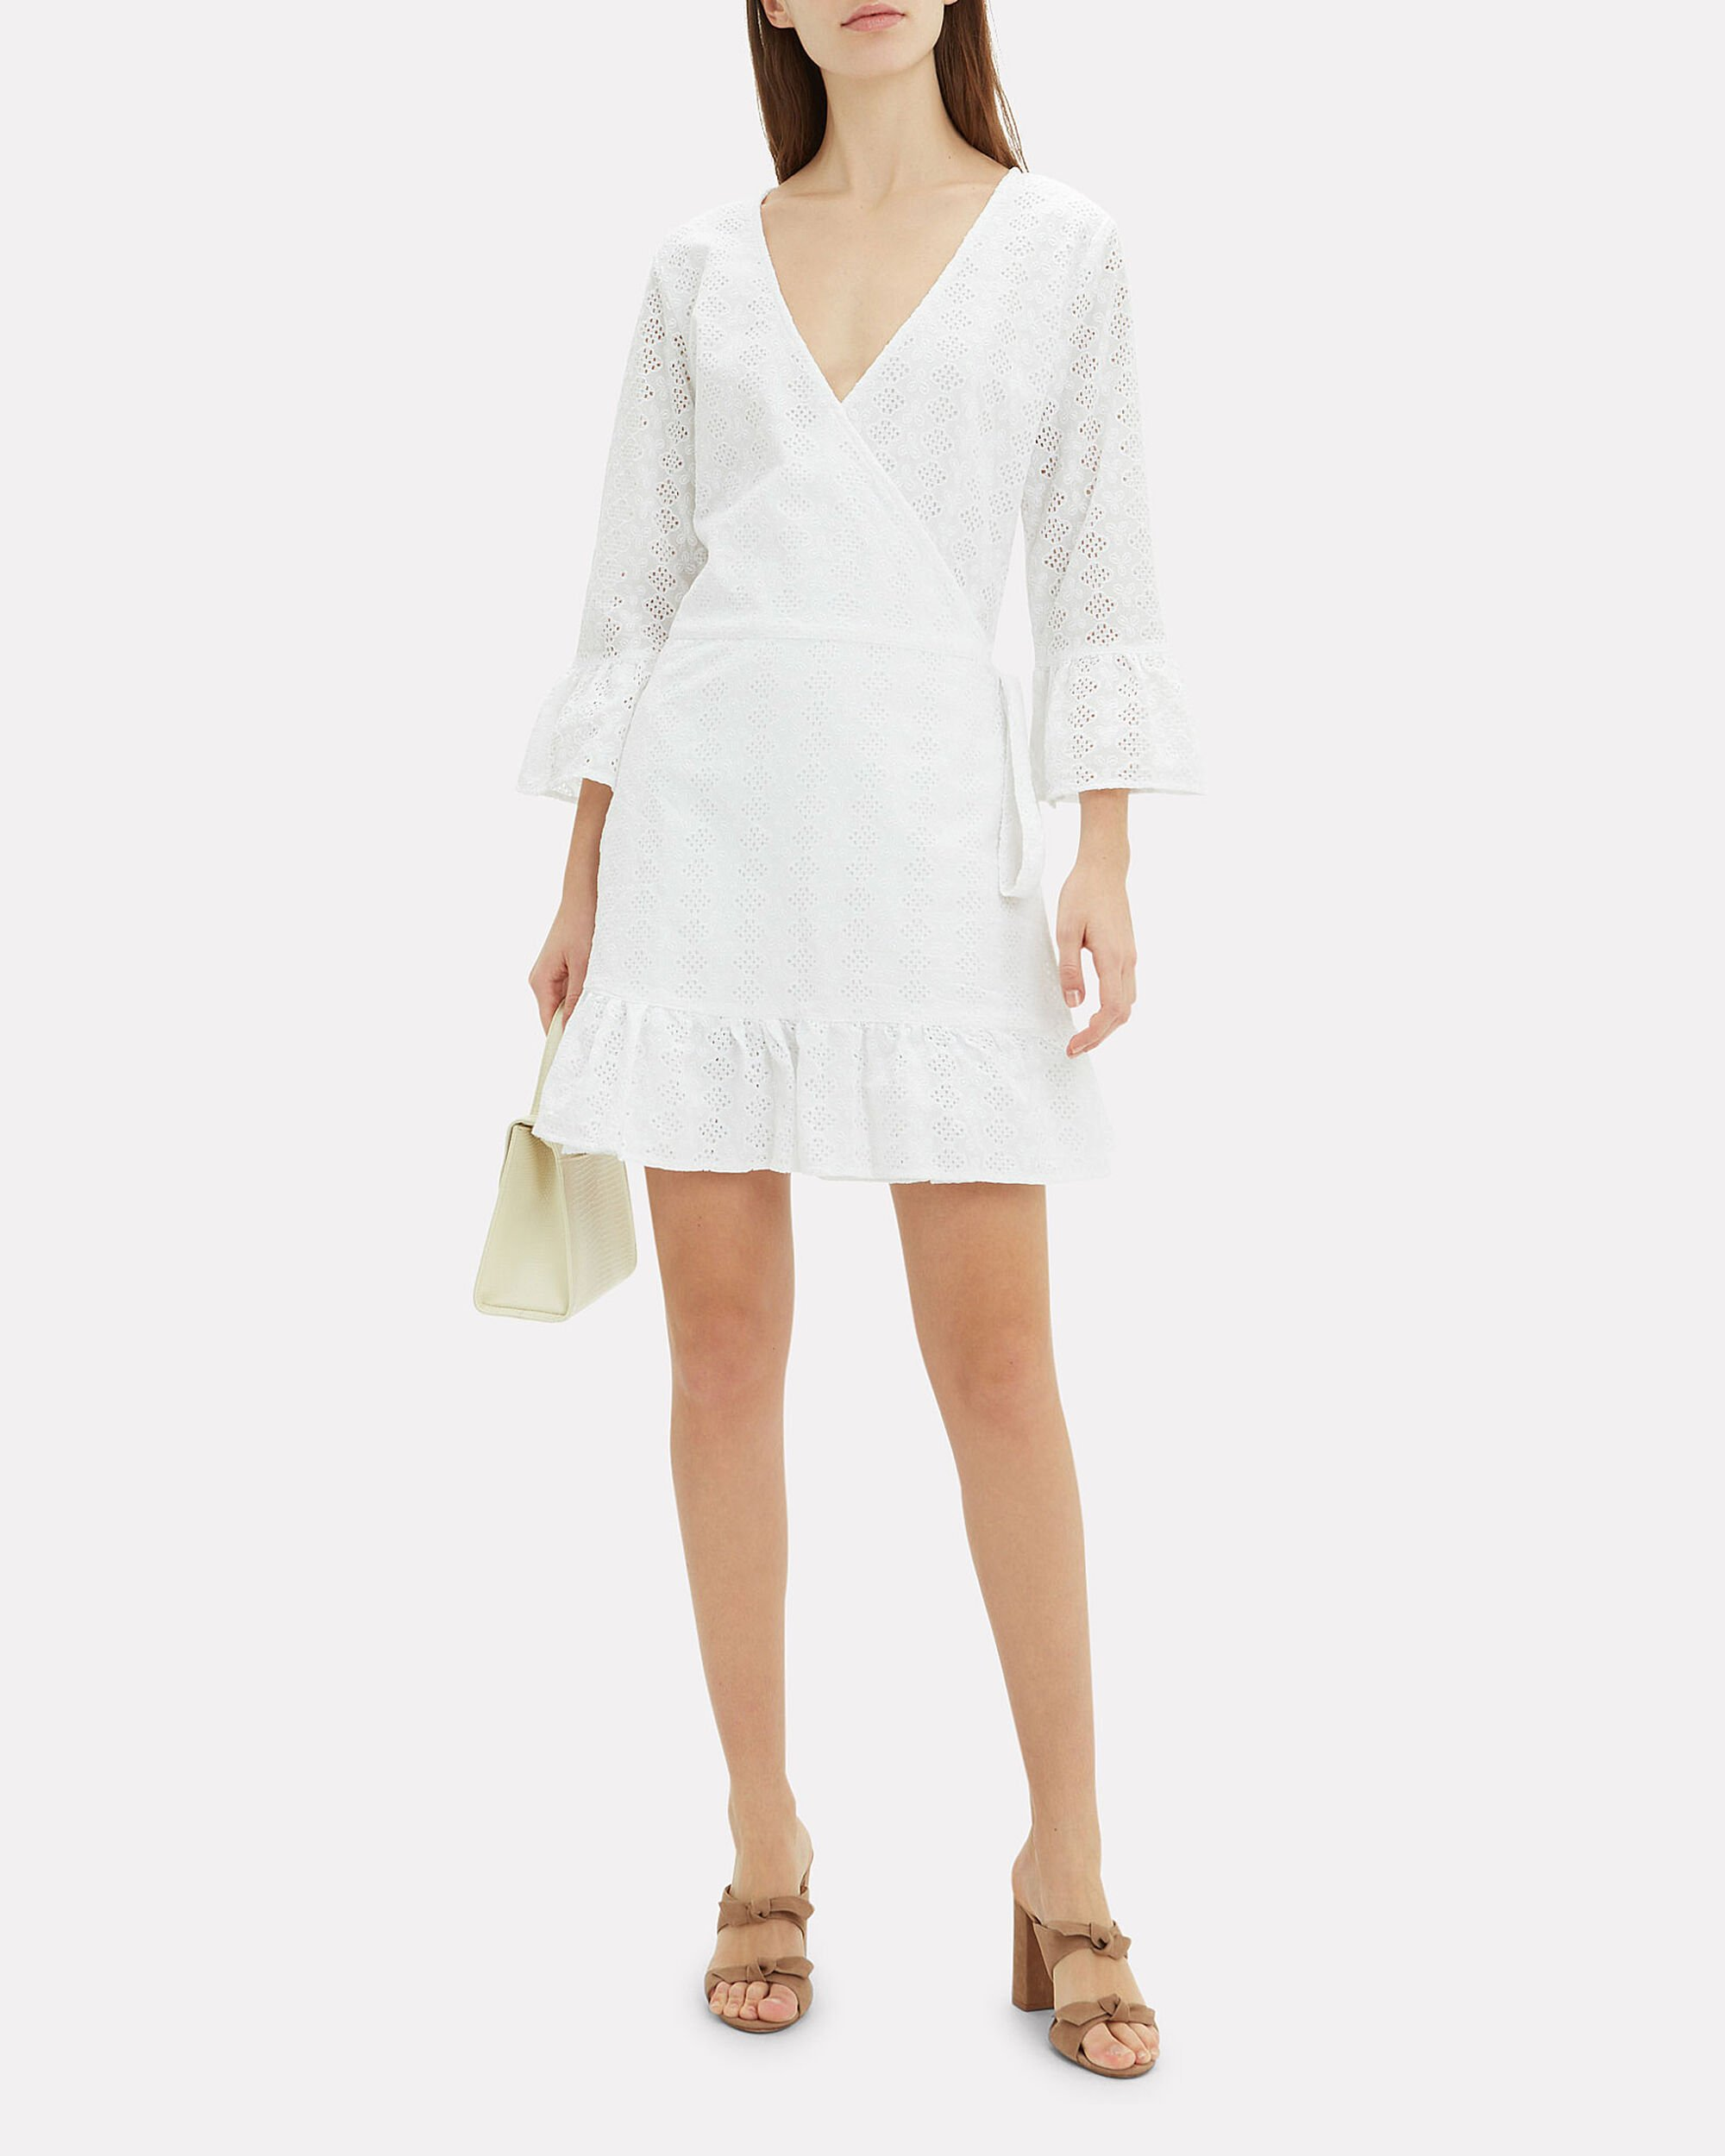 Vogue White Eyelet Coverup Dress, WHITE, hi-res